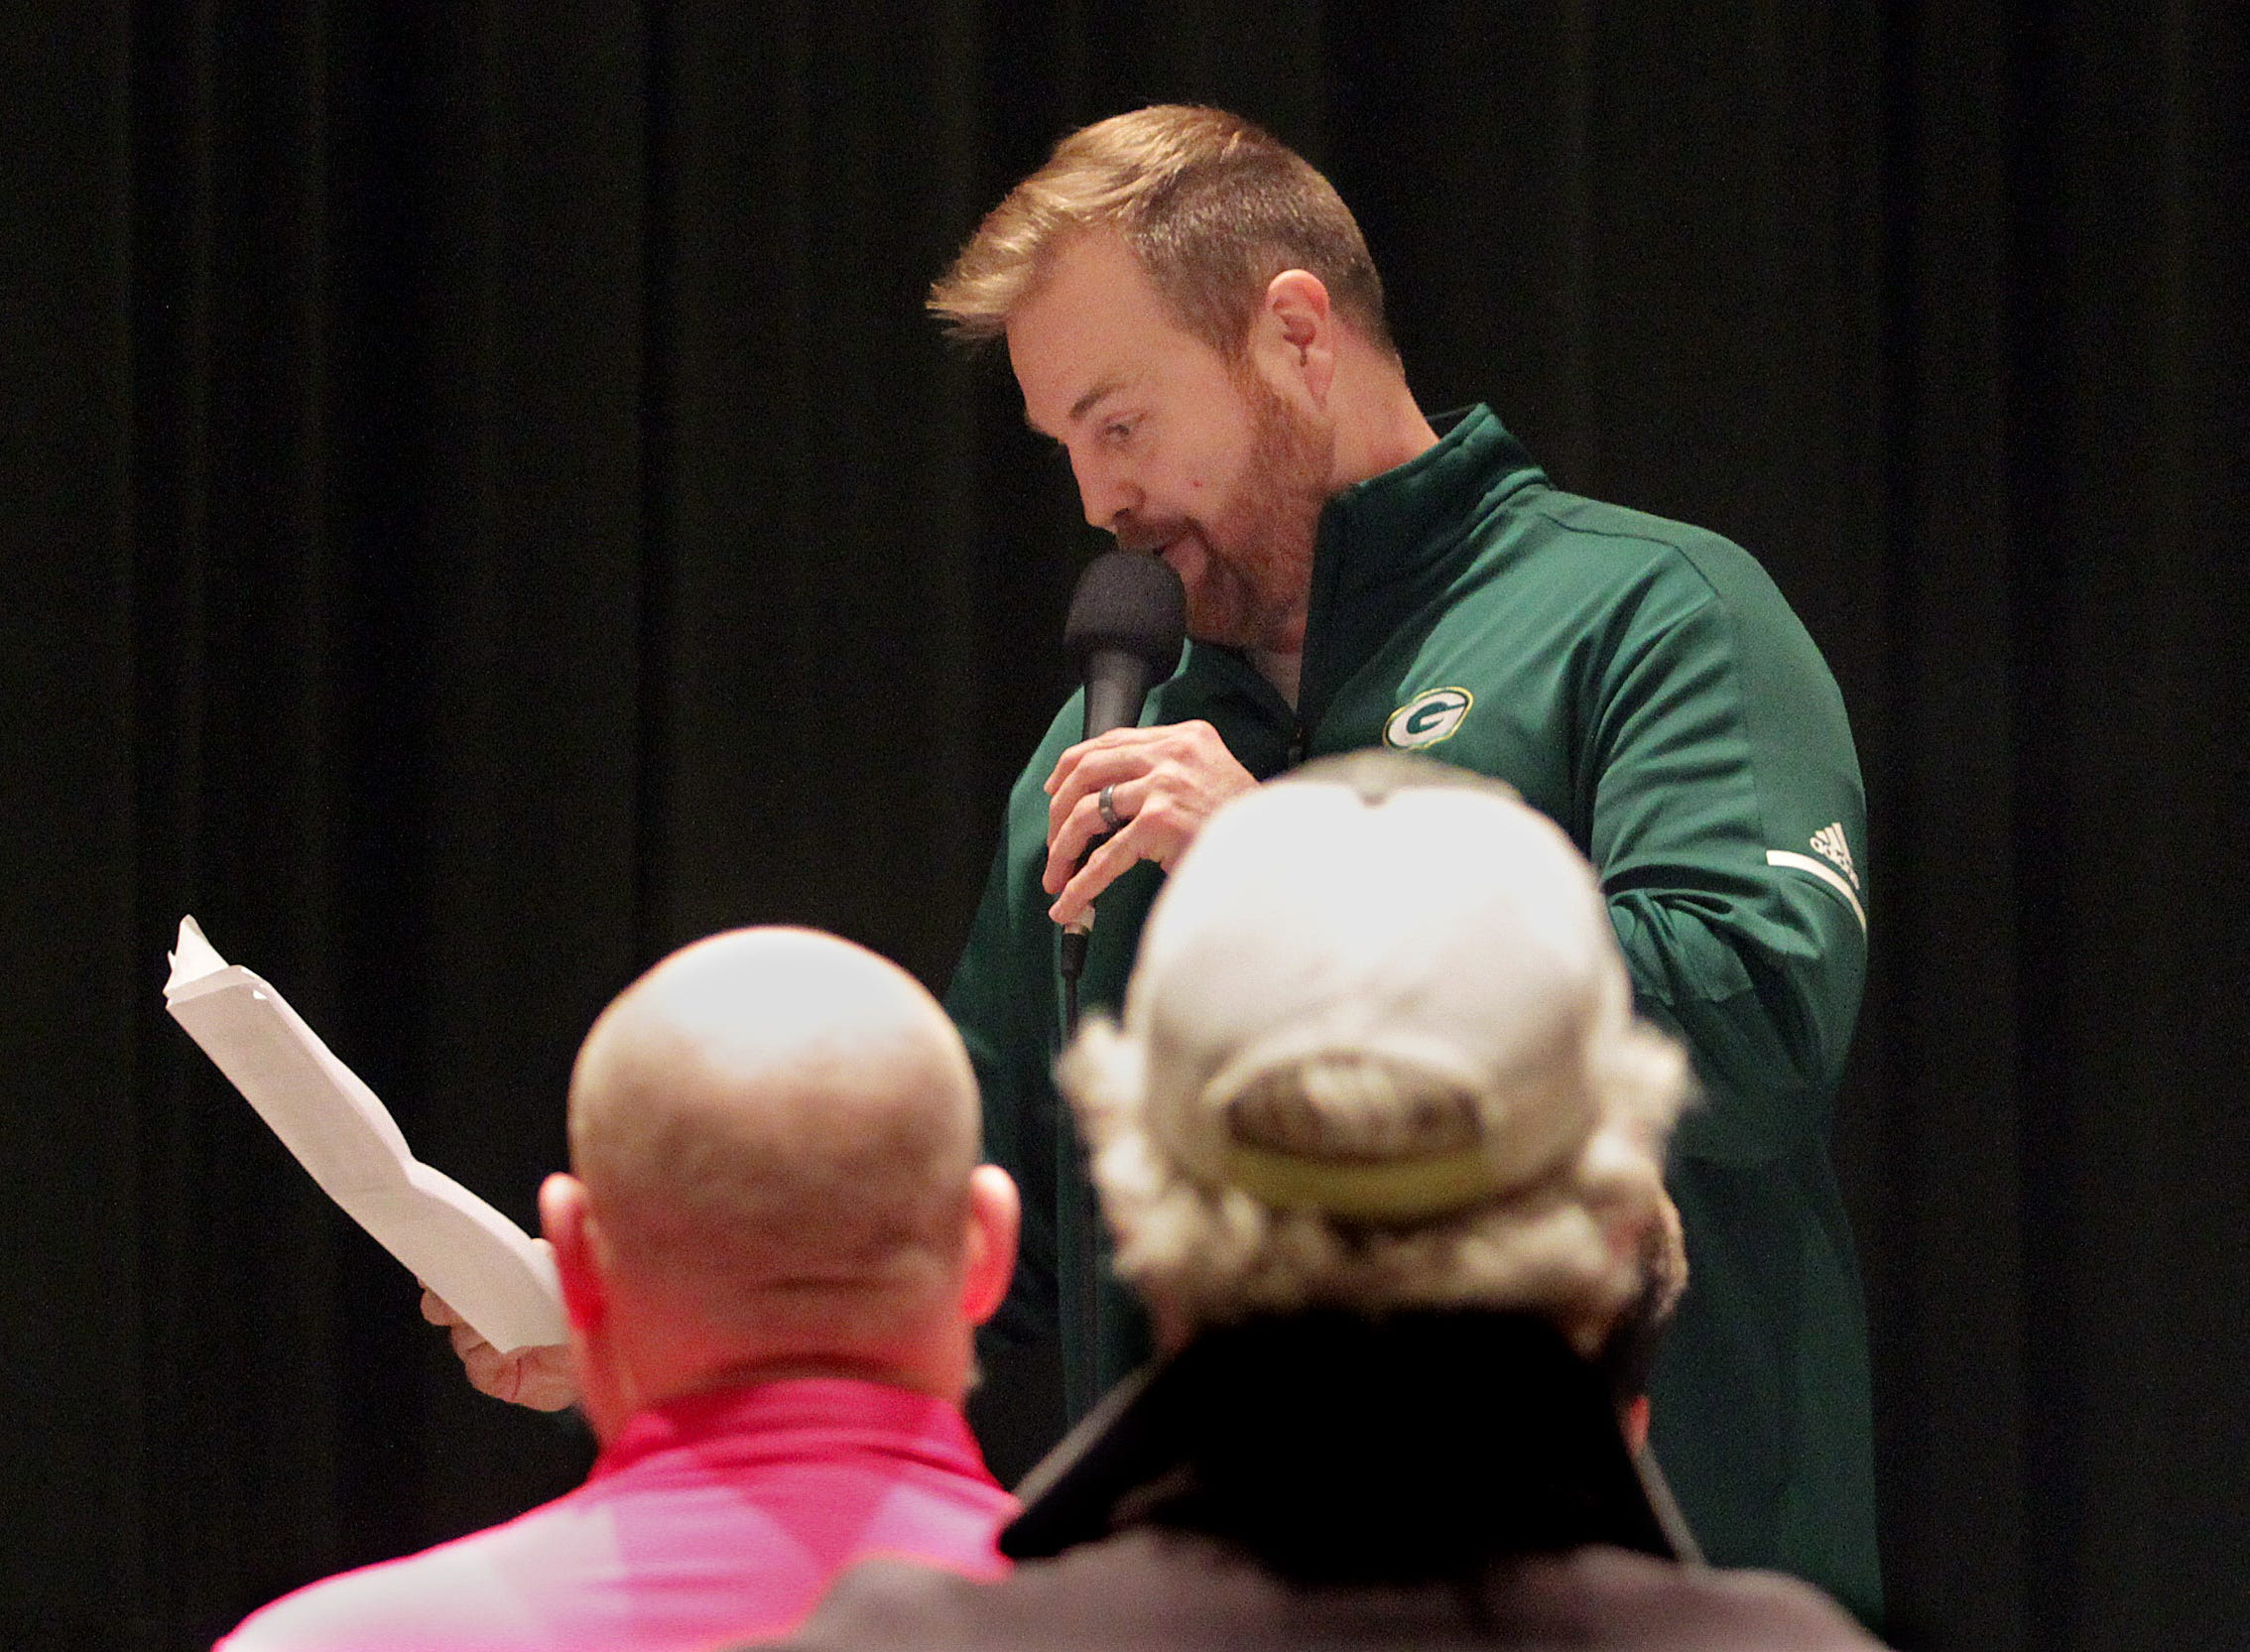 New Gallatin Football Coach Chad Watson speaks about the job ahead of him at a meeting at Gallatin High School on Tuesday, January 9, 2019.